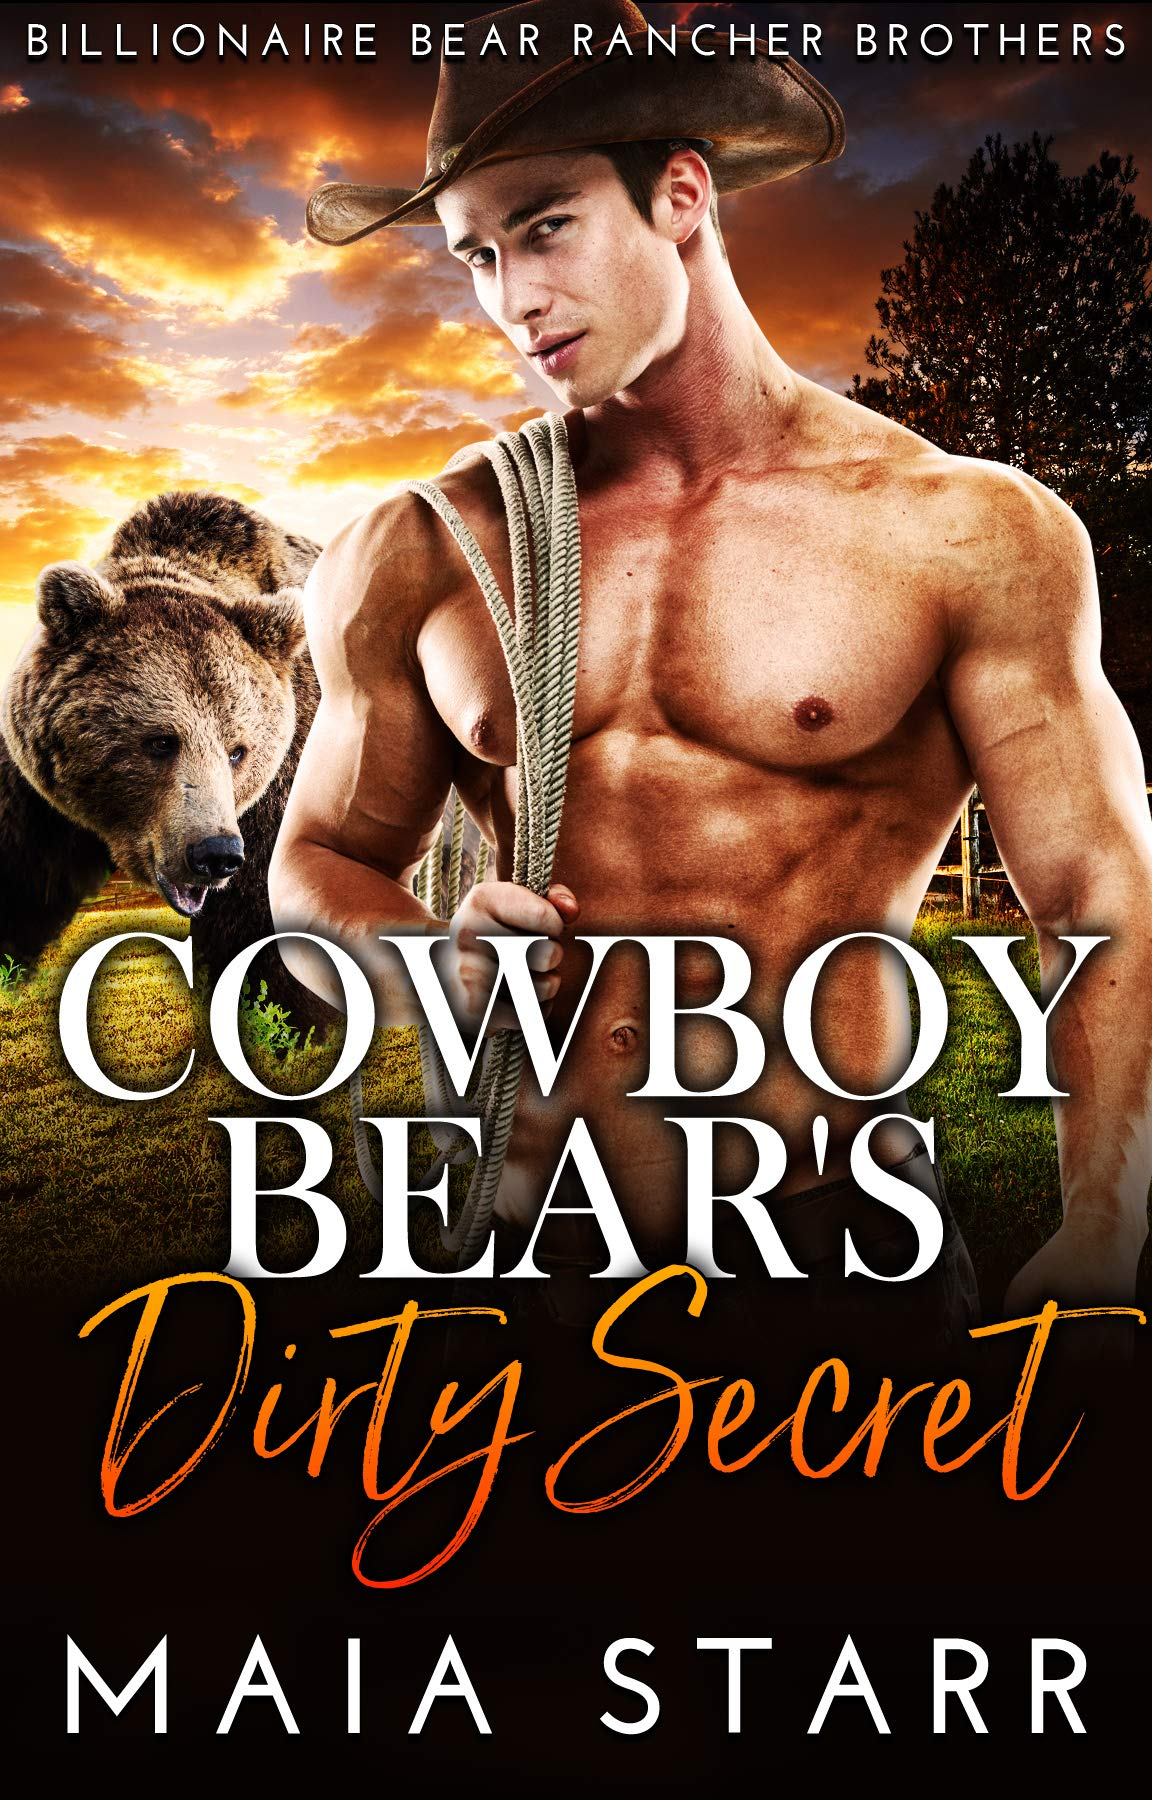 Cowboy Bear's Dirty Secret (Billionaire Bear Rancher Brothers Book 4)